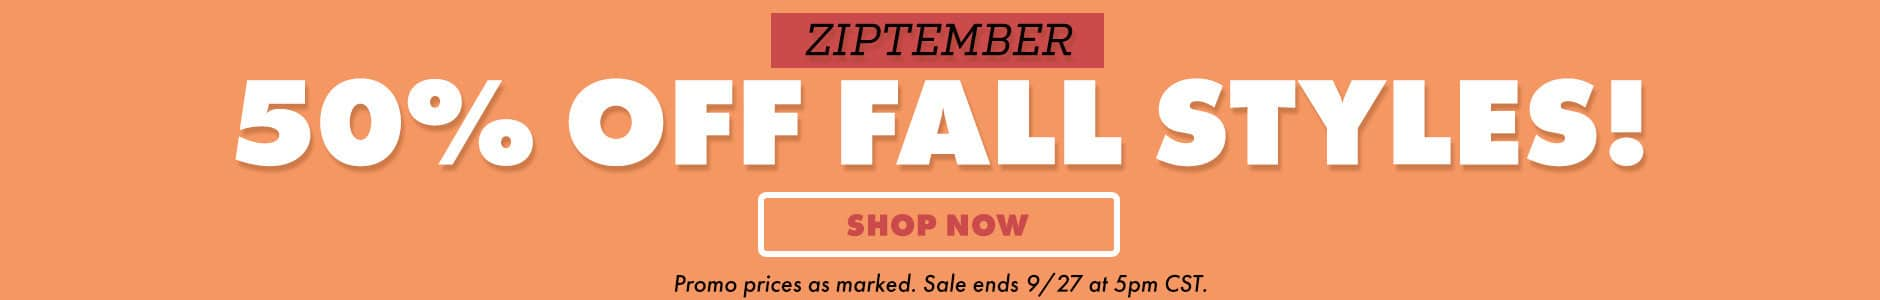 50% off fall styles! Shop now. Promo prices as marked. Sale ends 9/27 at 5pm CST.